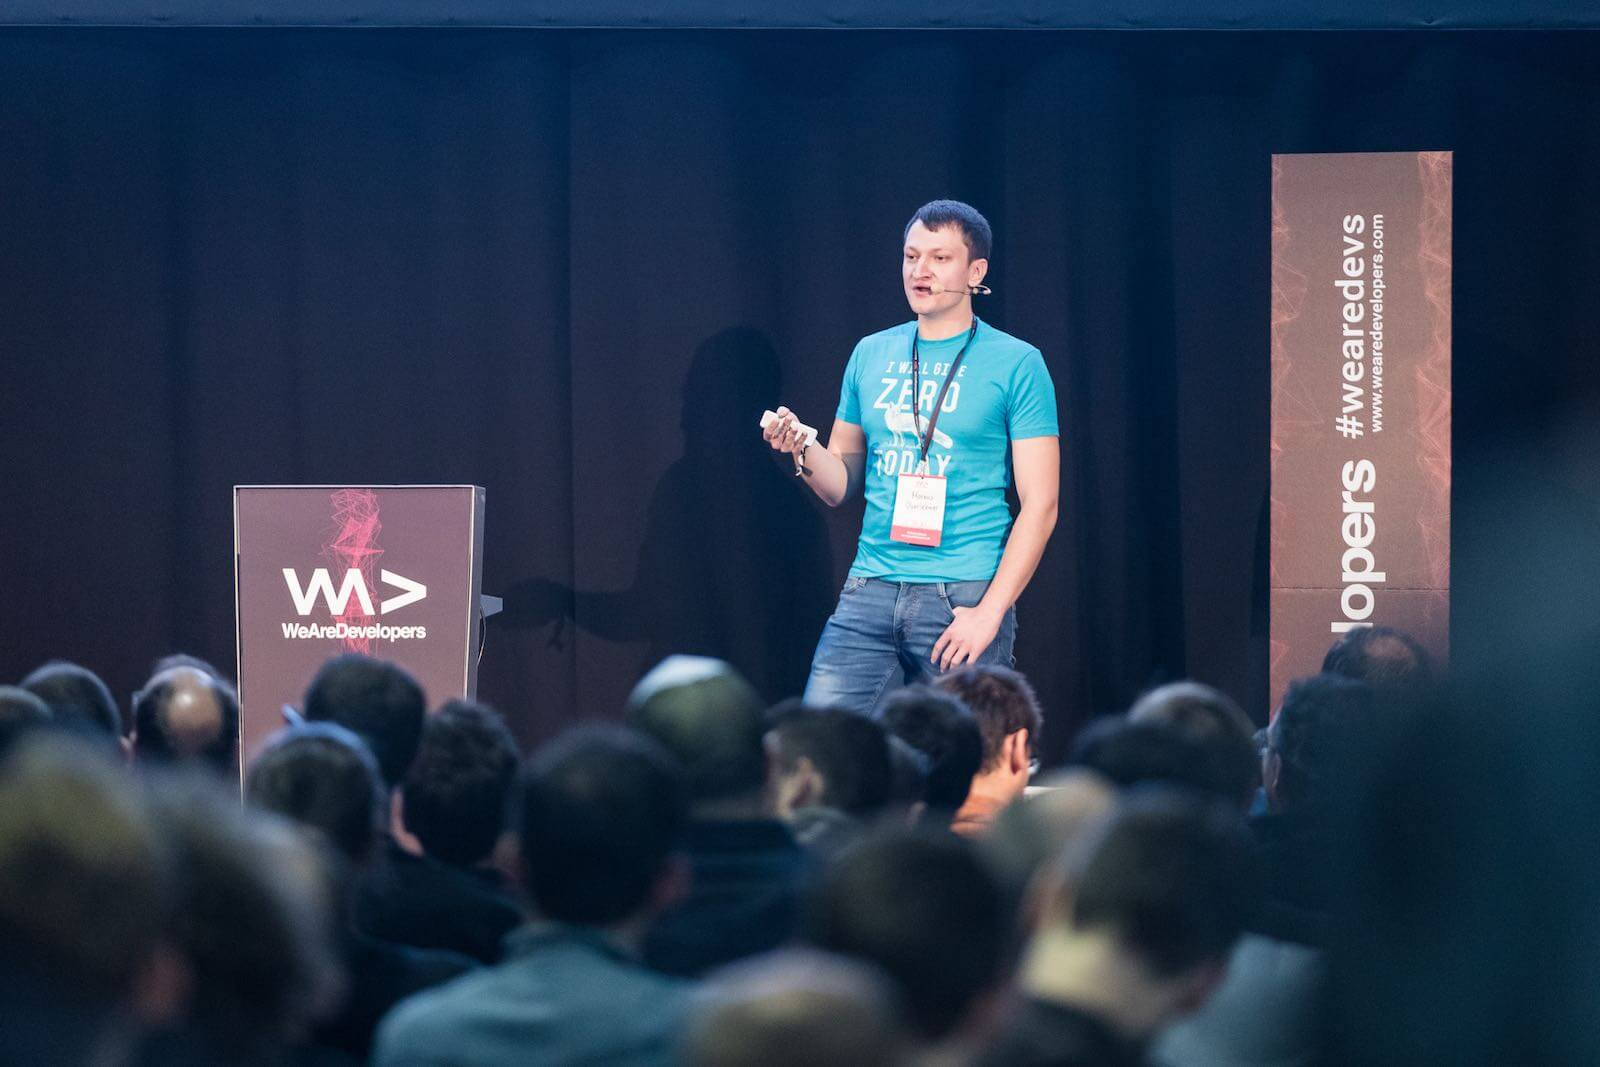 Markus Oberlehner on the stage at the WeAreDevelopers conference 2017